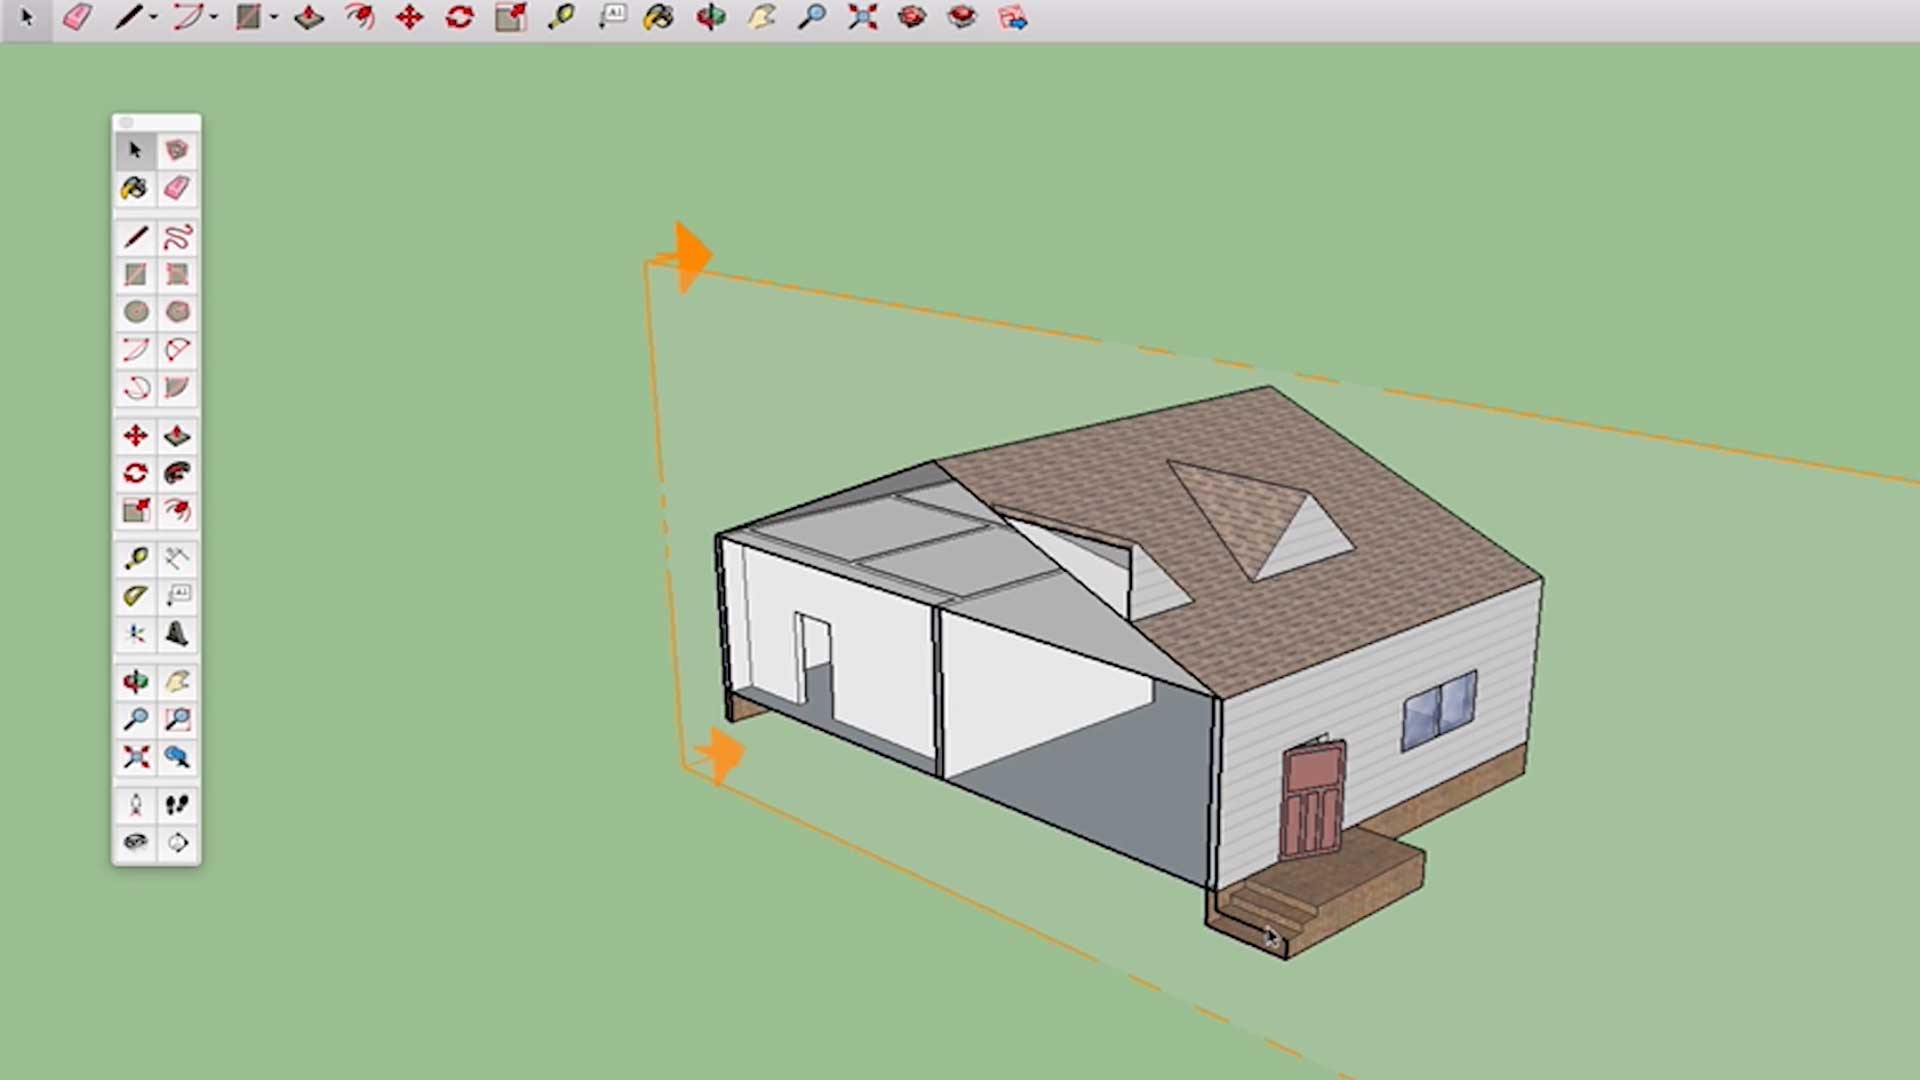 model created in sketchup